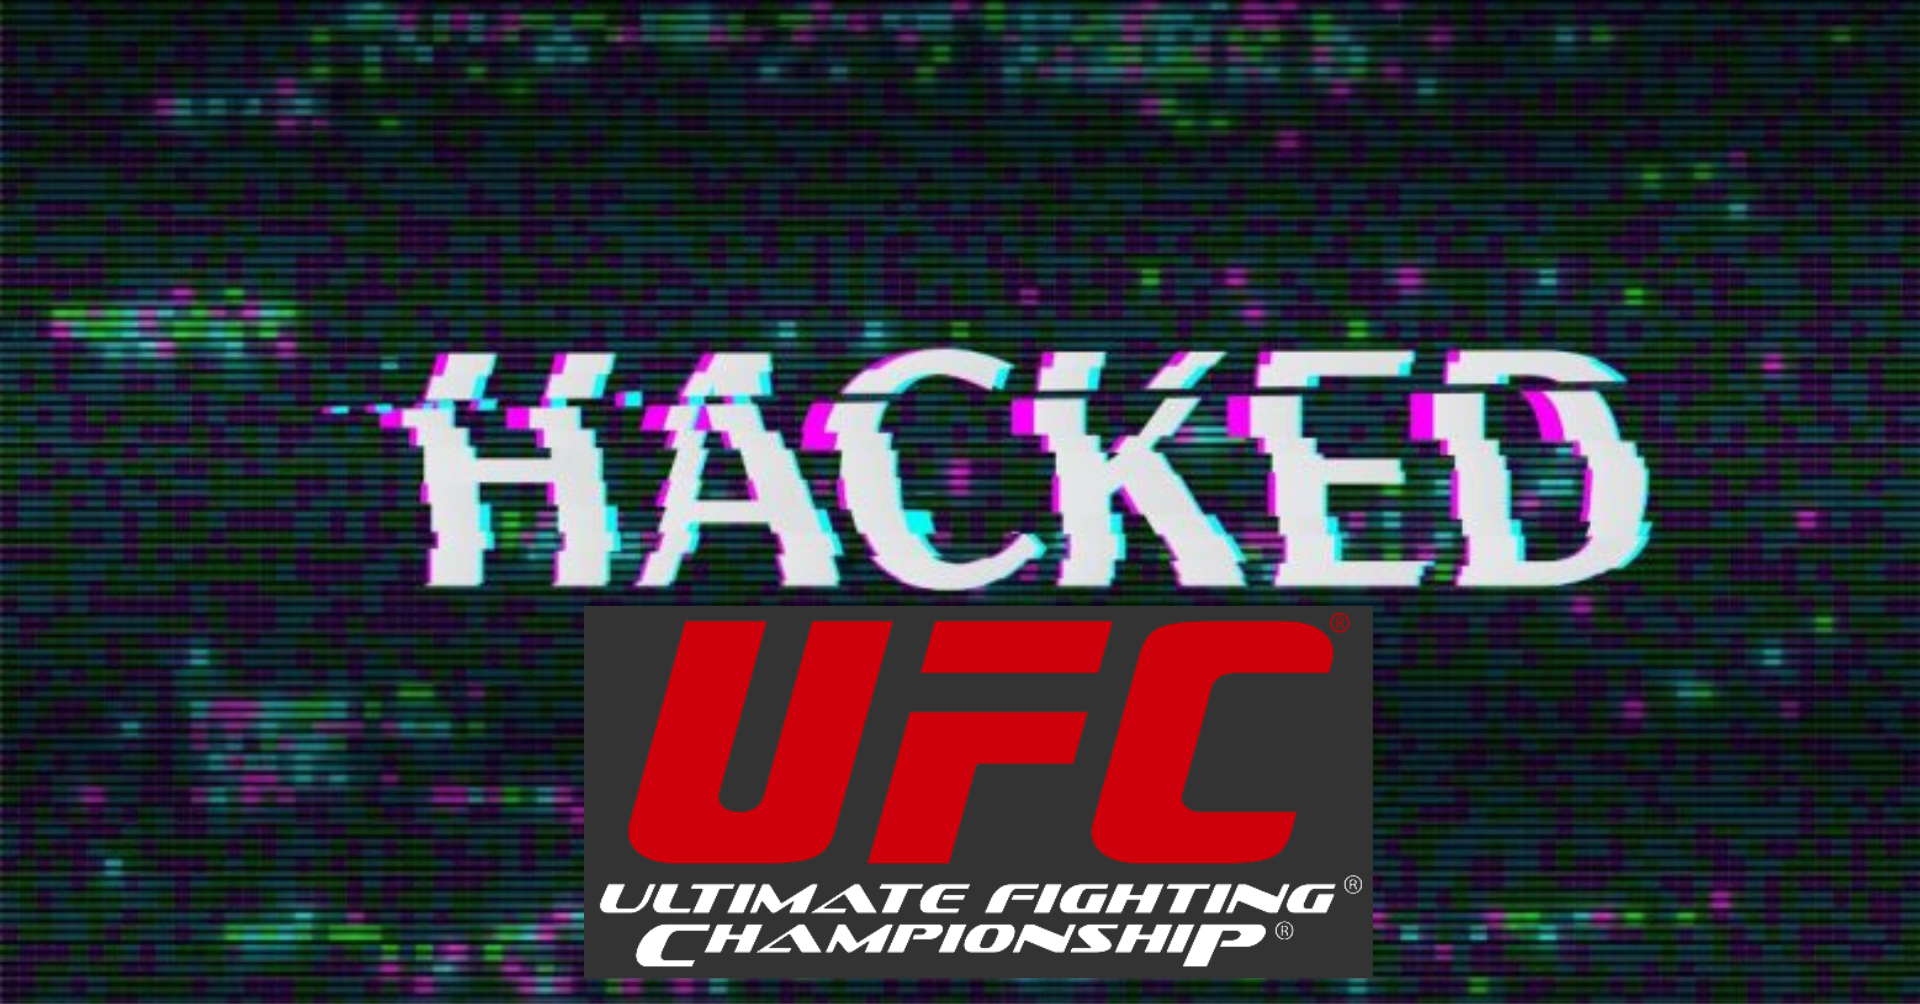 UFC News: A security agency hacks UFC's IG and Twitter accounts to ask for a job! - hacked